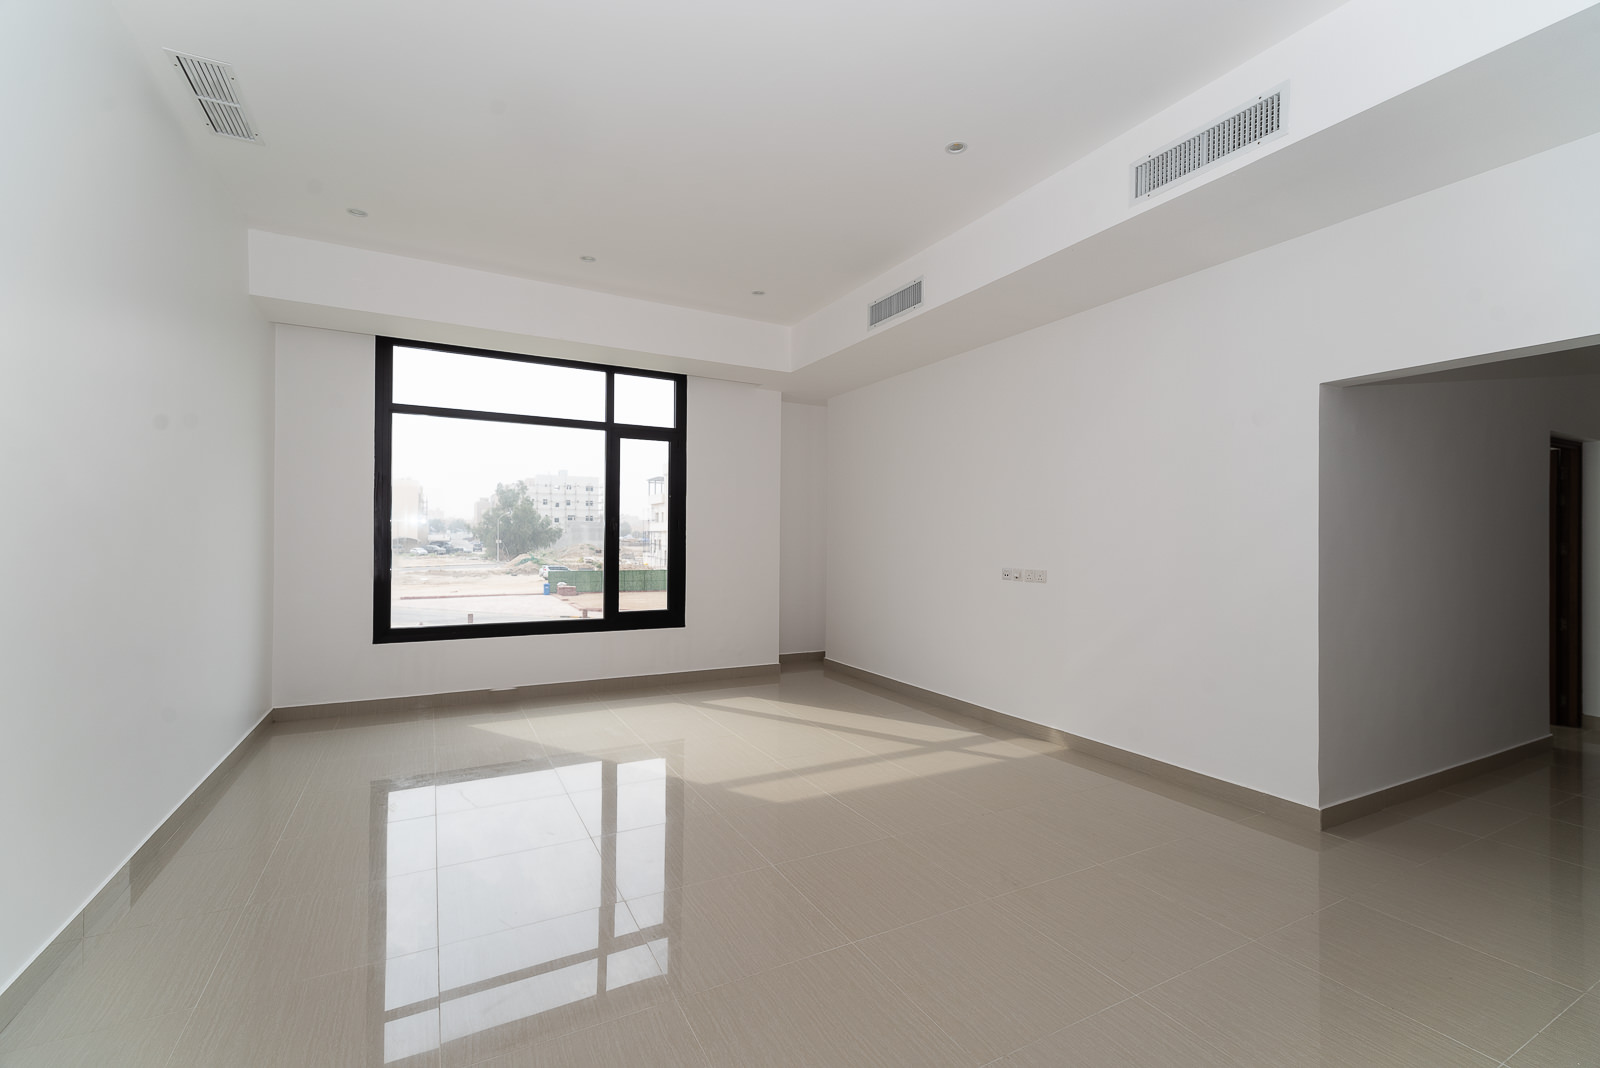 Fnaitees – new, unfurnished, three bedroom apartment